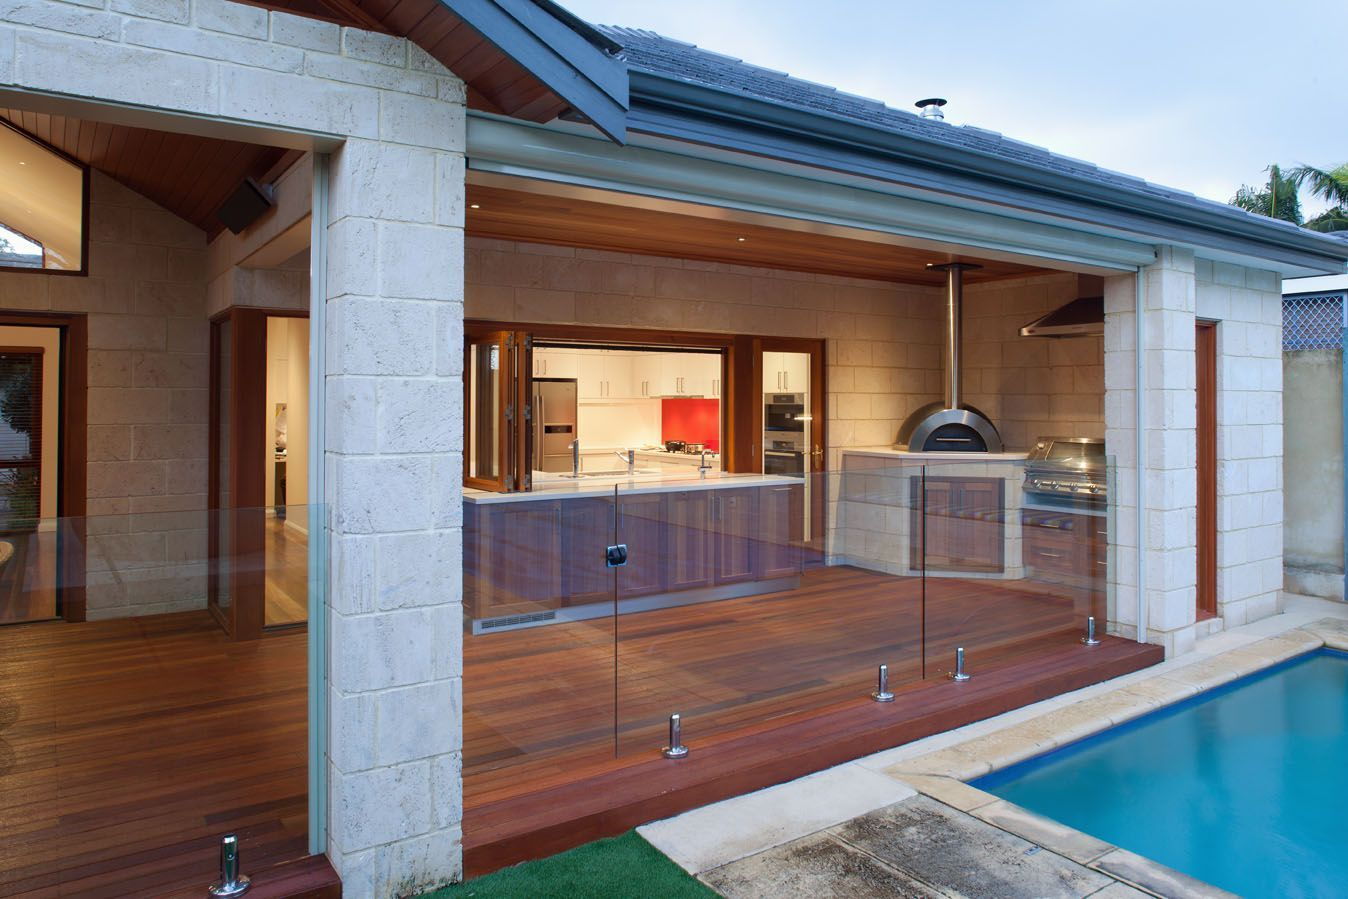 Outdoor Stunning Semi Outdoor Kitchen Design With Wooden Cabinets ...